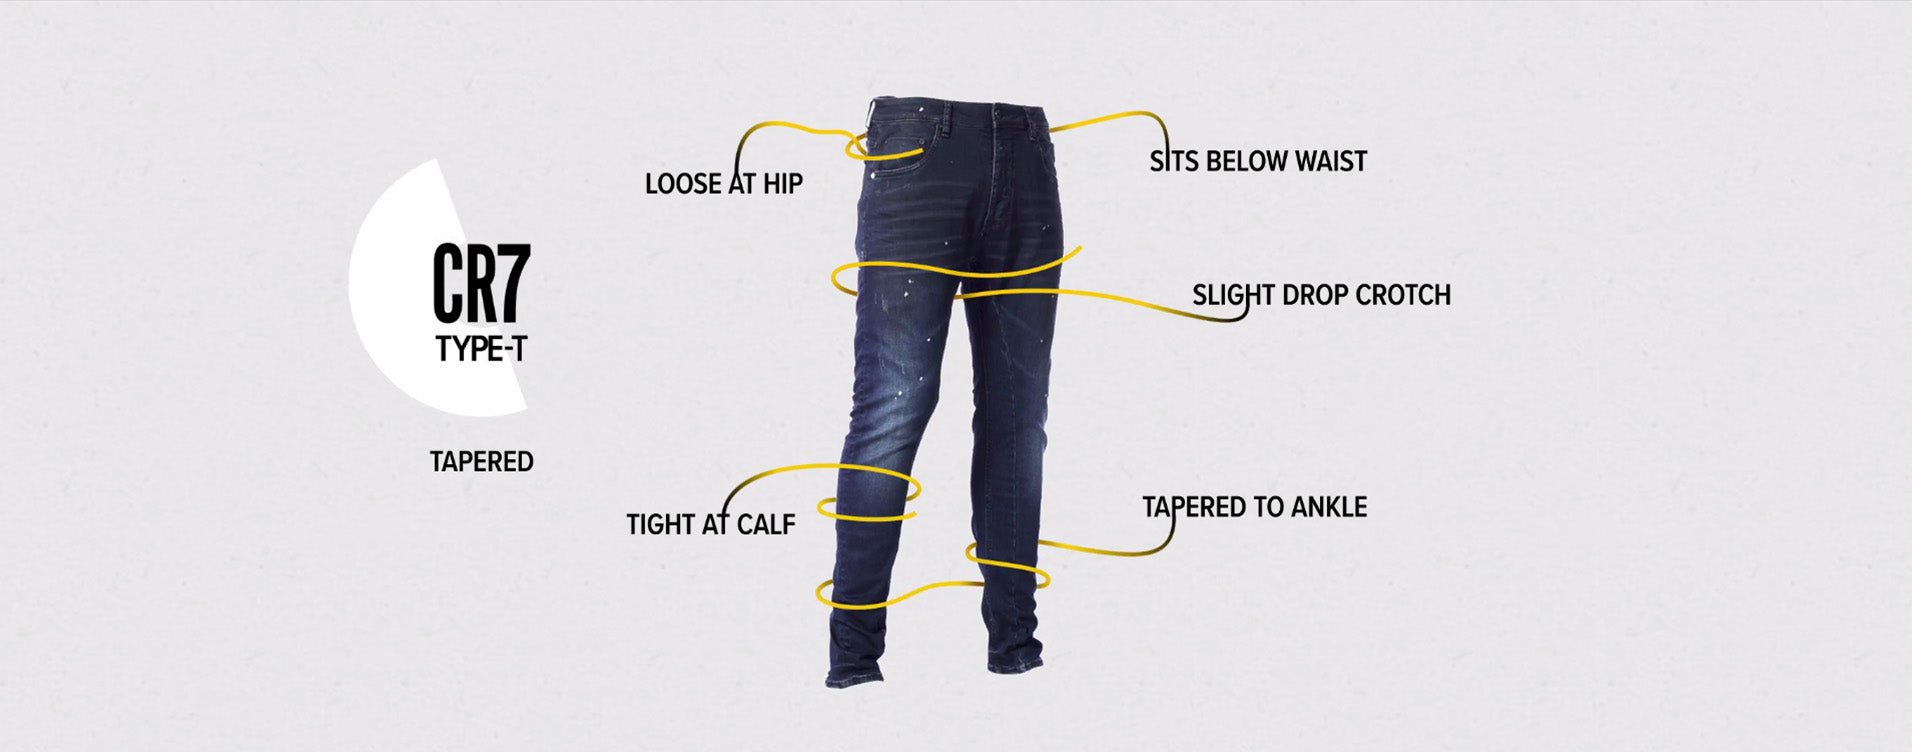 TYPE-T TAPERED JEAN - INDIGO fit